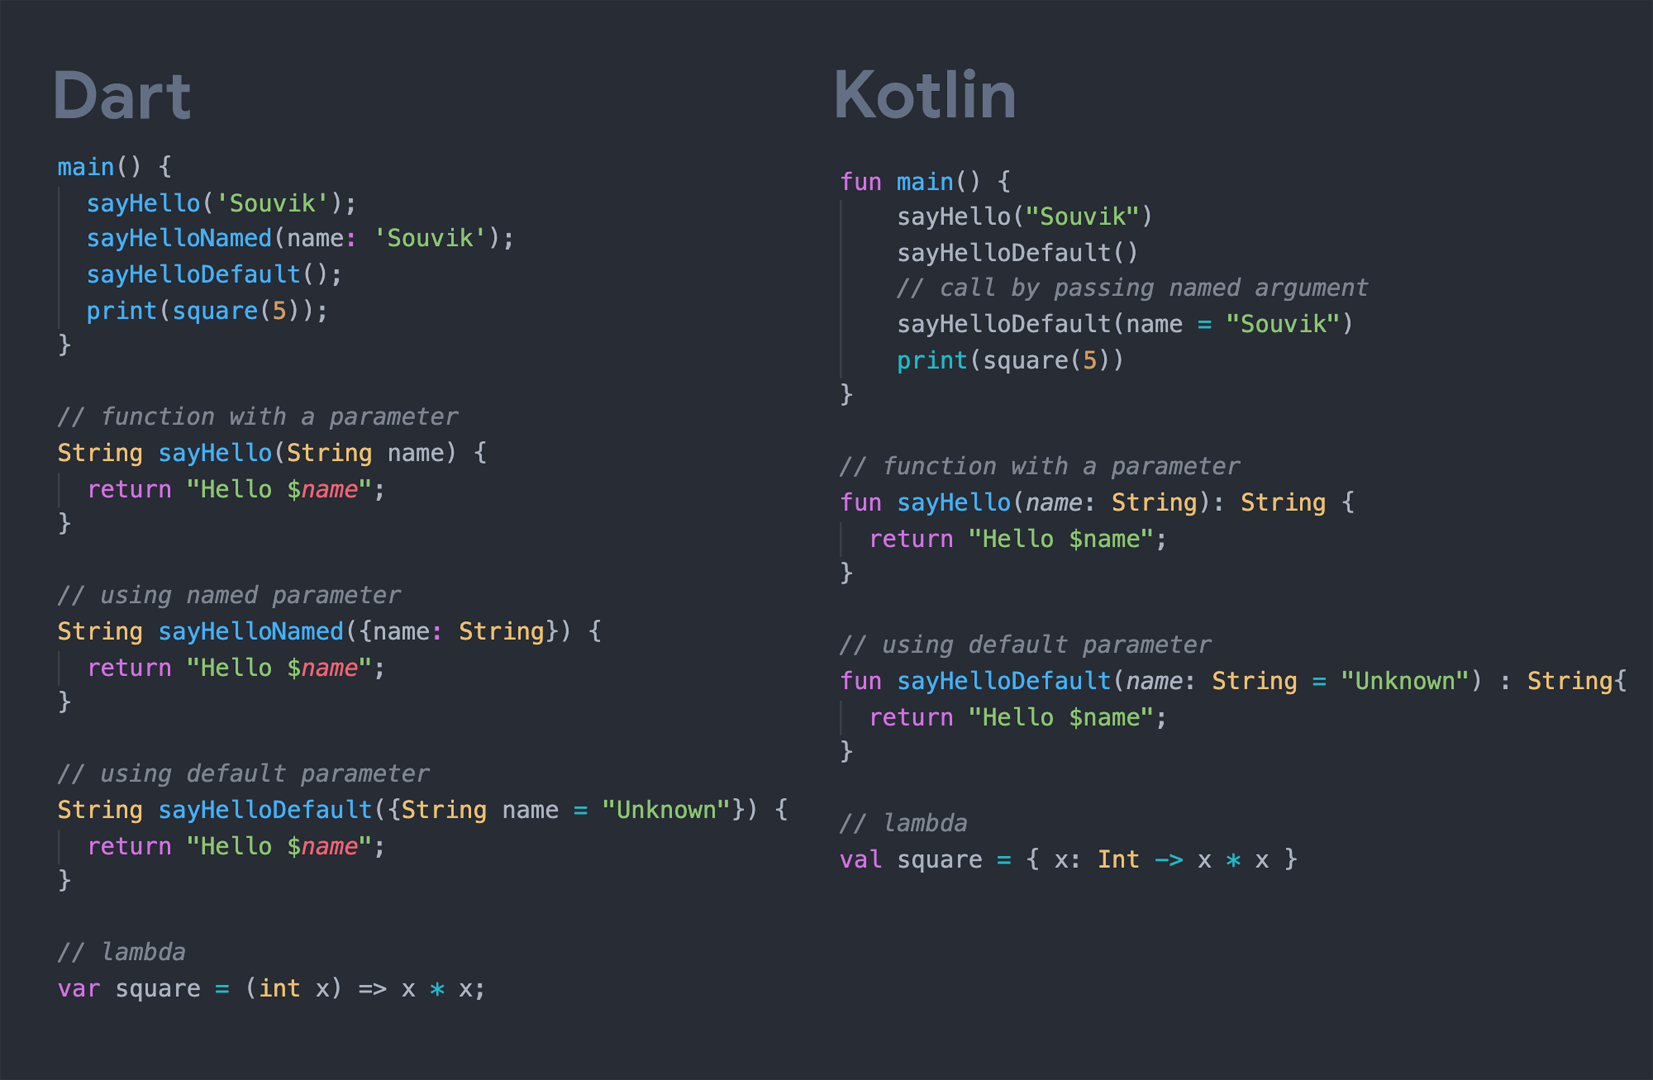 Dart vs Kotlin: Functions